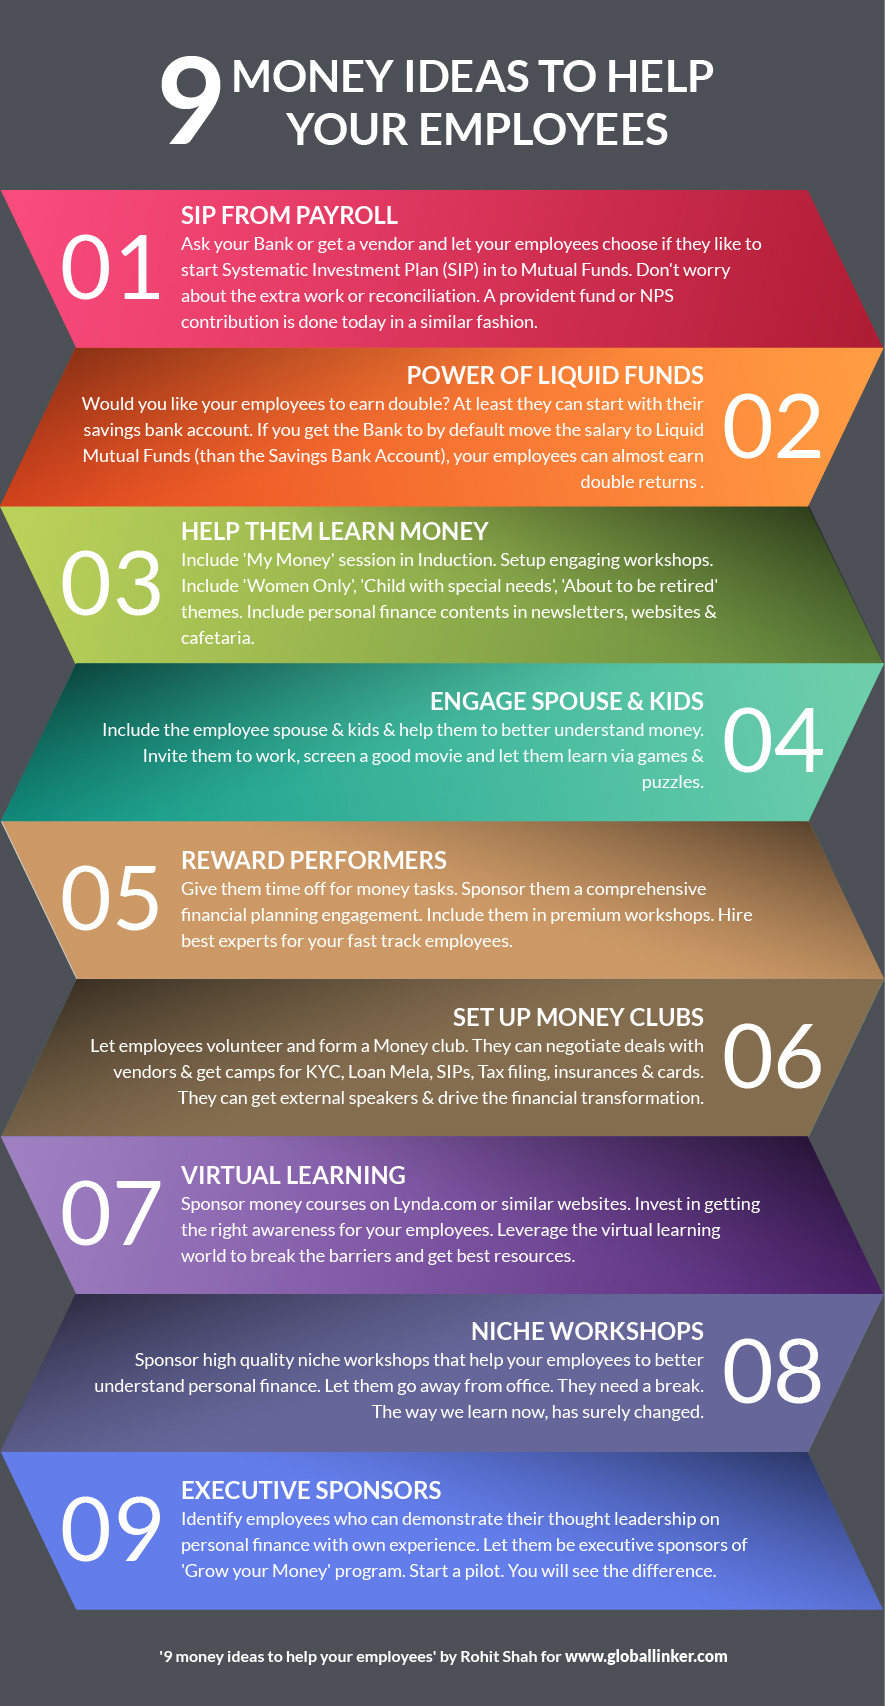 9 money ideas to help your employees